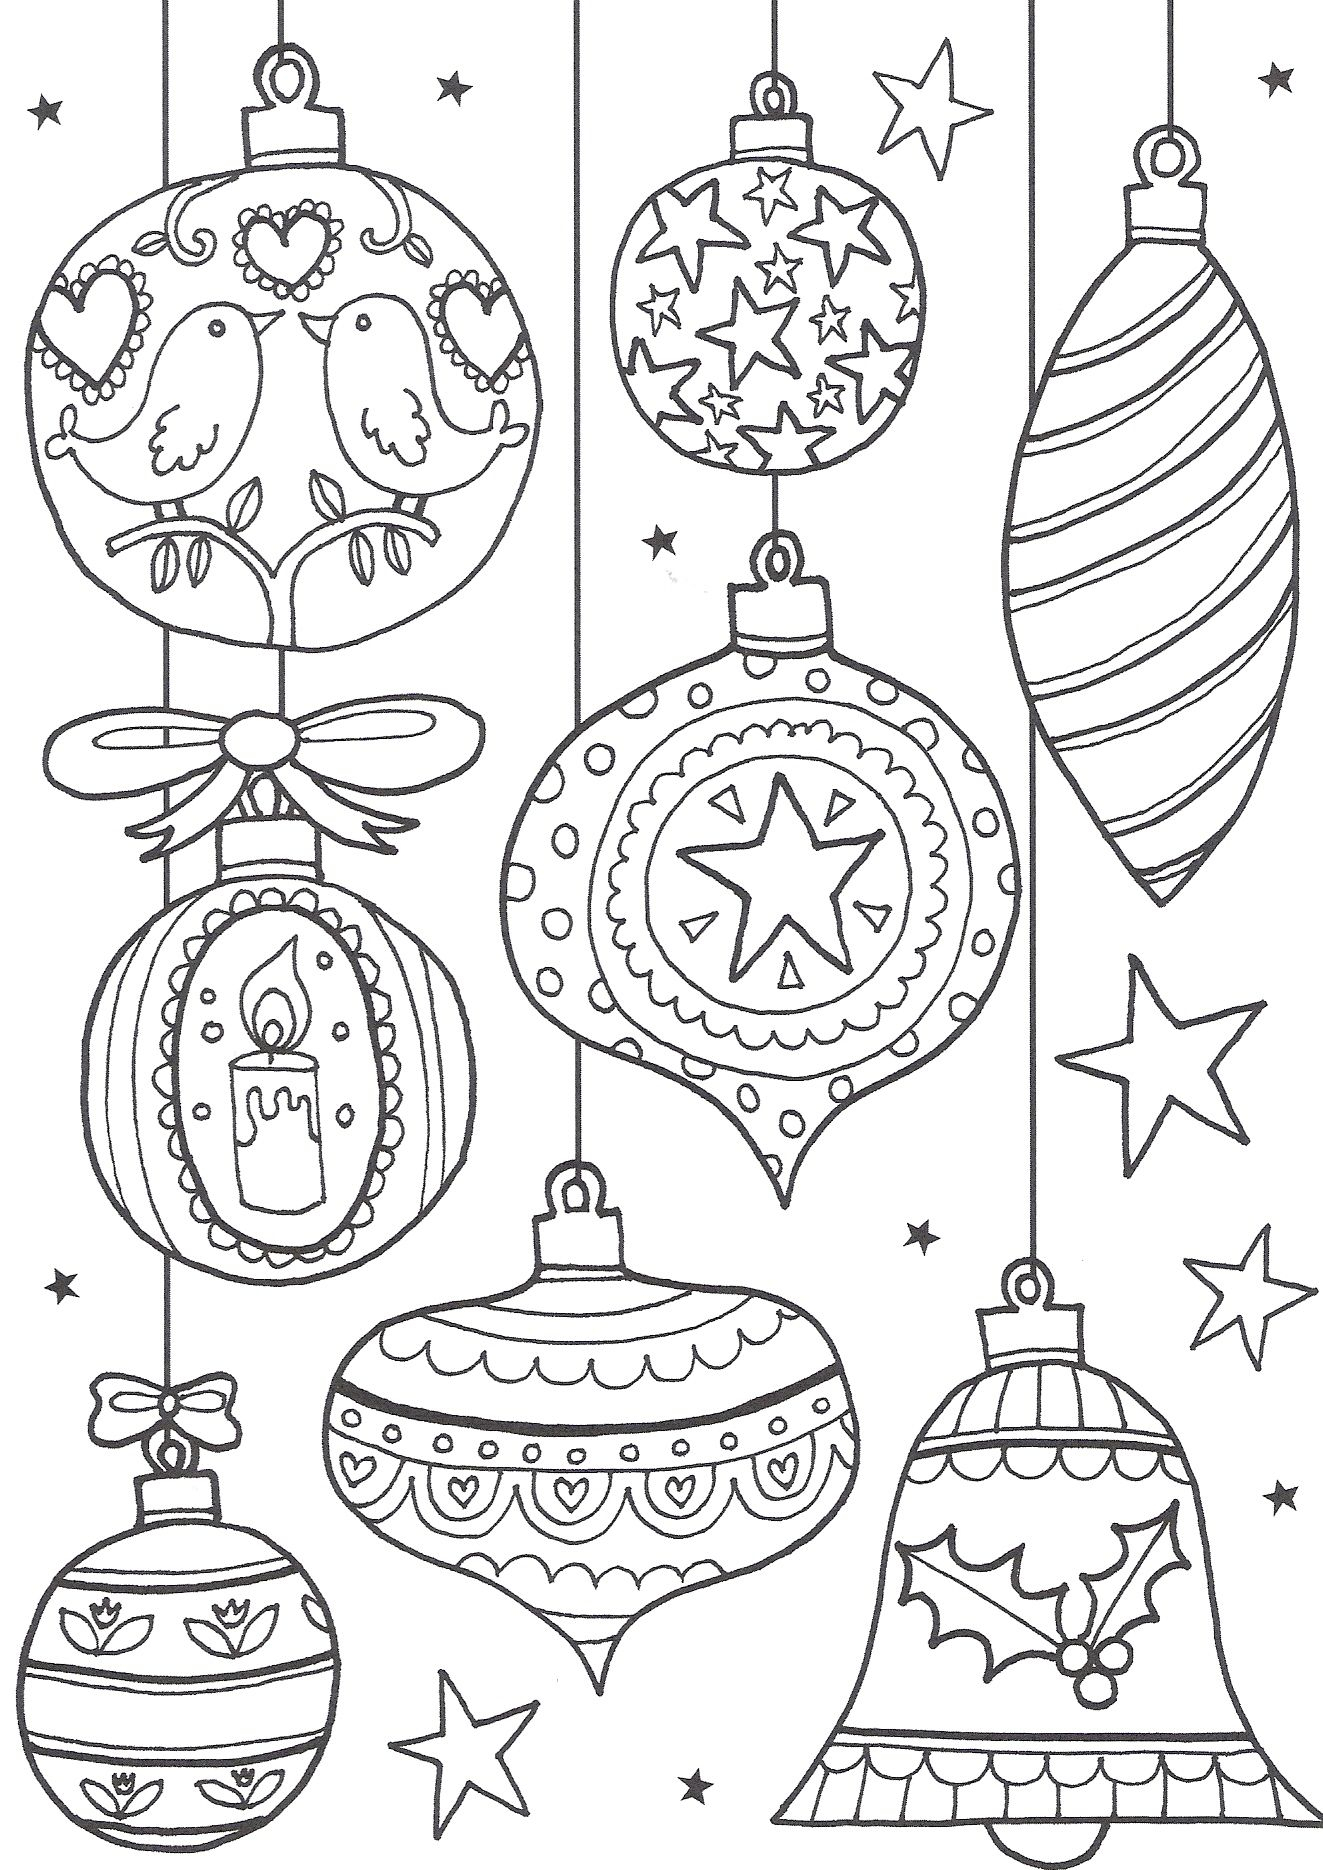 Free Christmas Colouring Pages For Adults – The Ultimate Roundup - Free Printable Christmas Coloring Pages And Activities